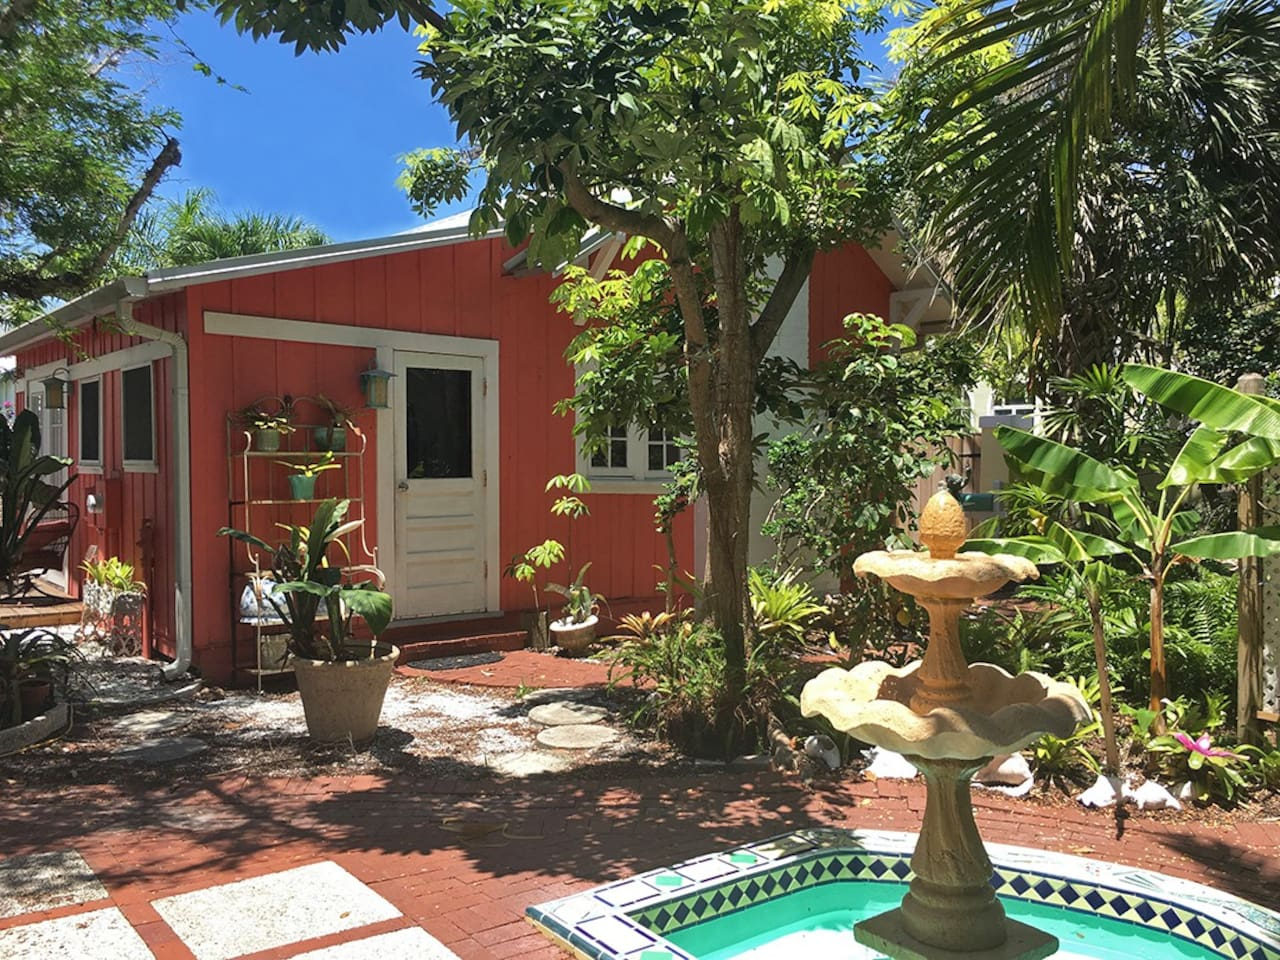 Vintage cottage with shared, landscaped courtyard